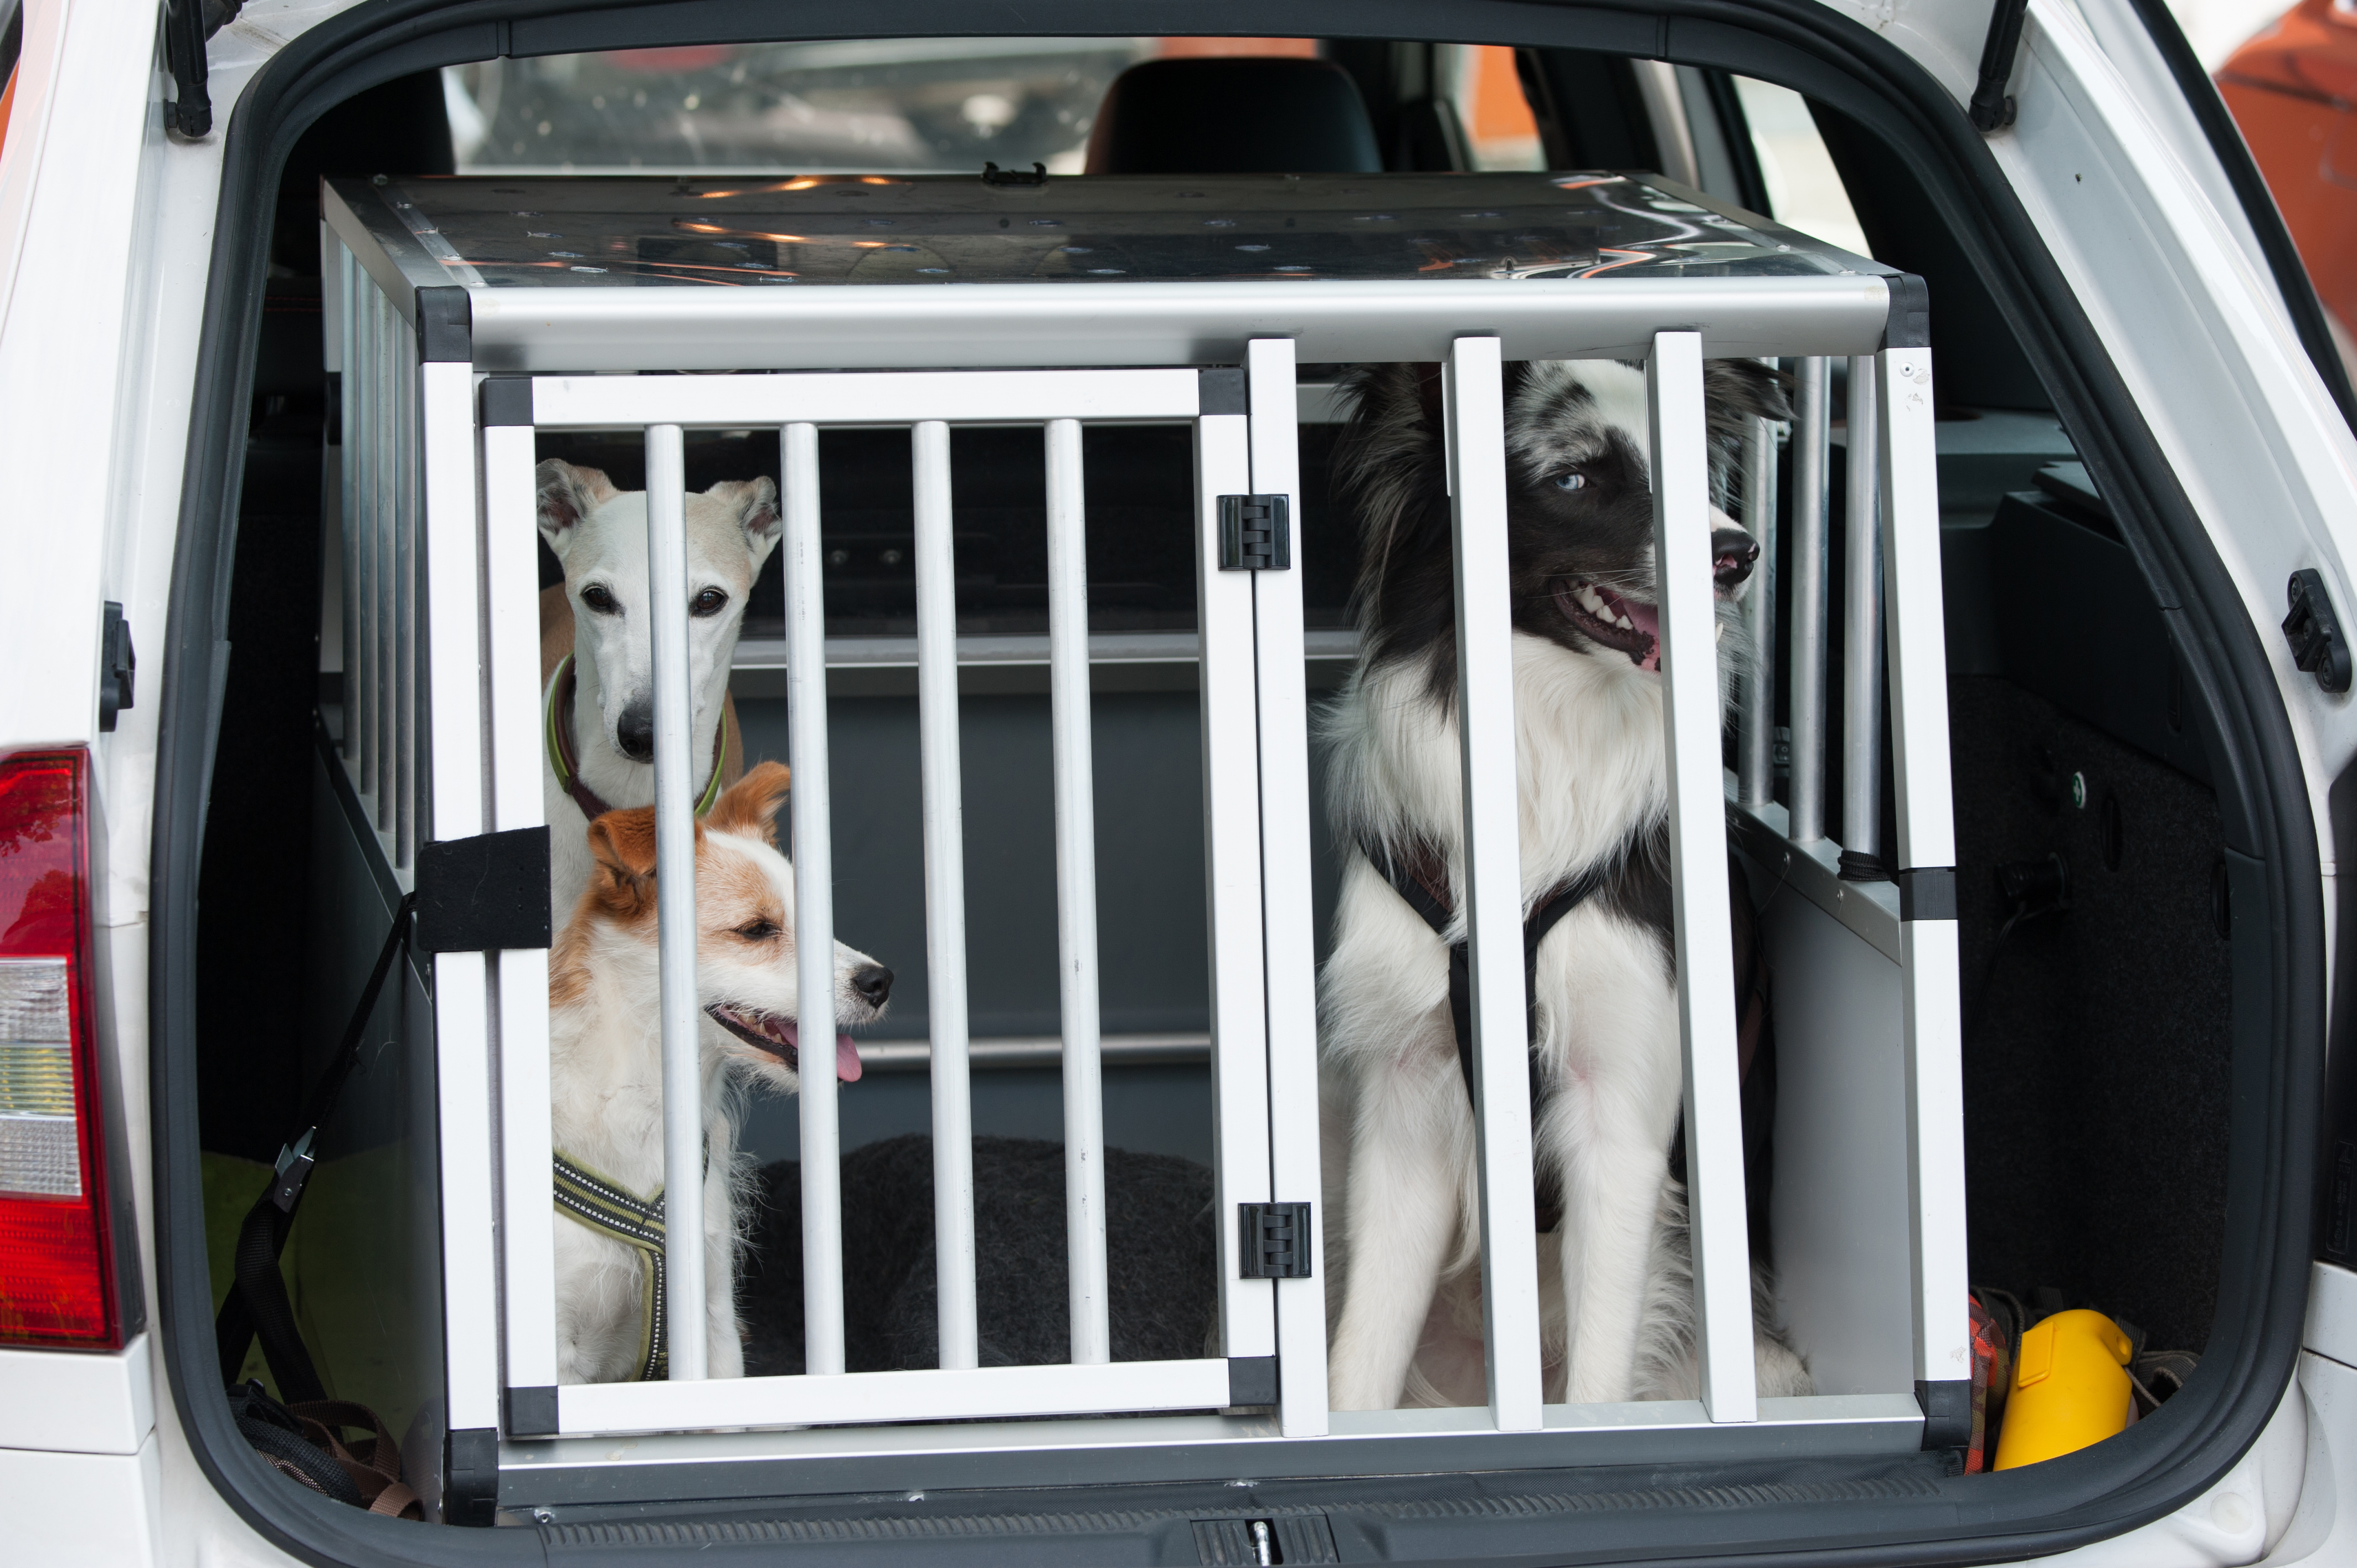 How To Travel Safely With a Dog In The Car {PetTravel} #SafeDogTravel #DogCrate #DogTravel www.scruffylittleterrier.com